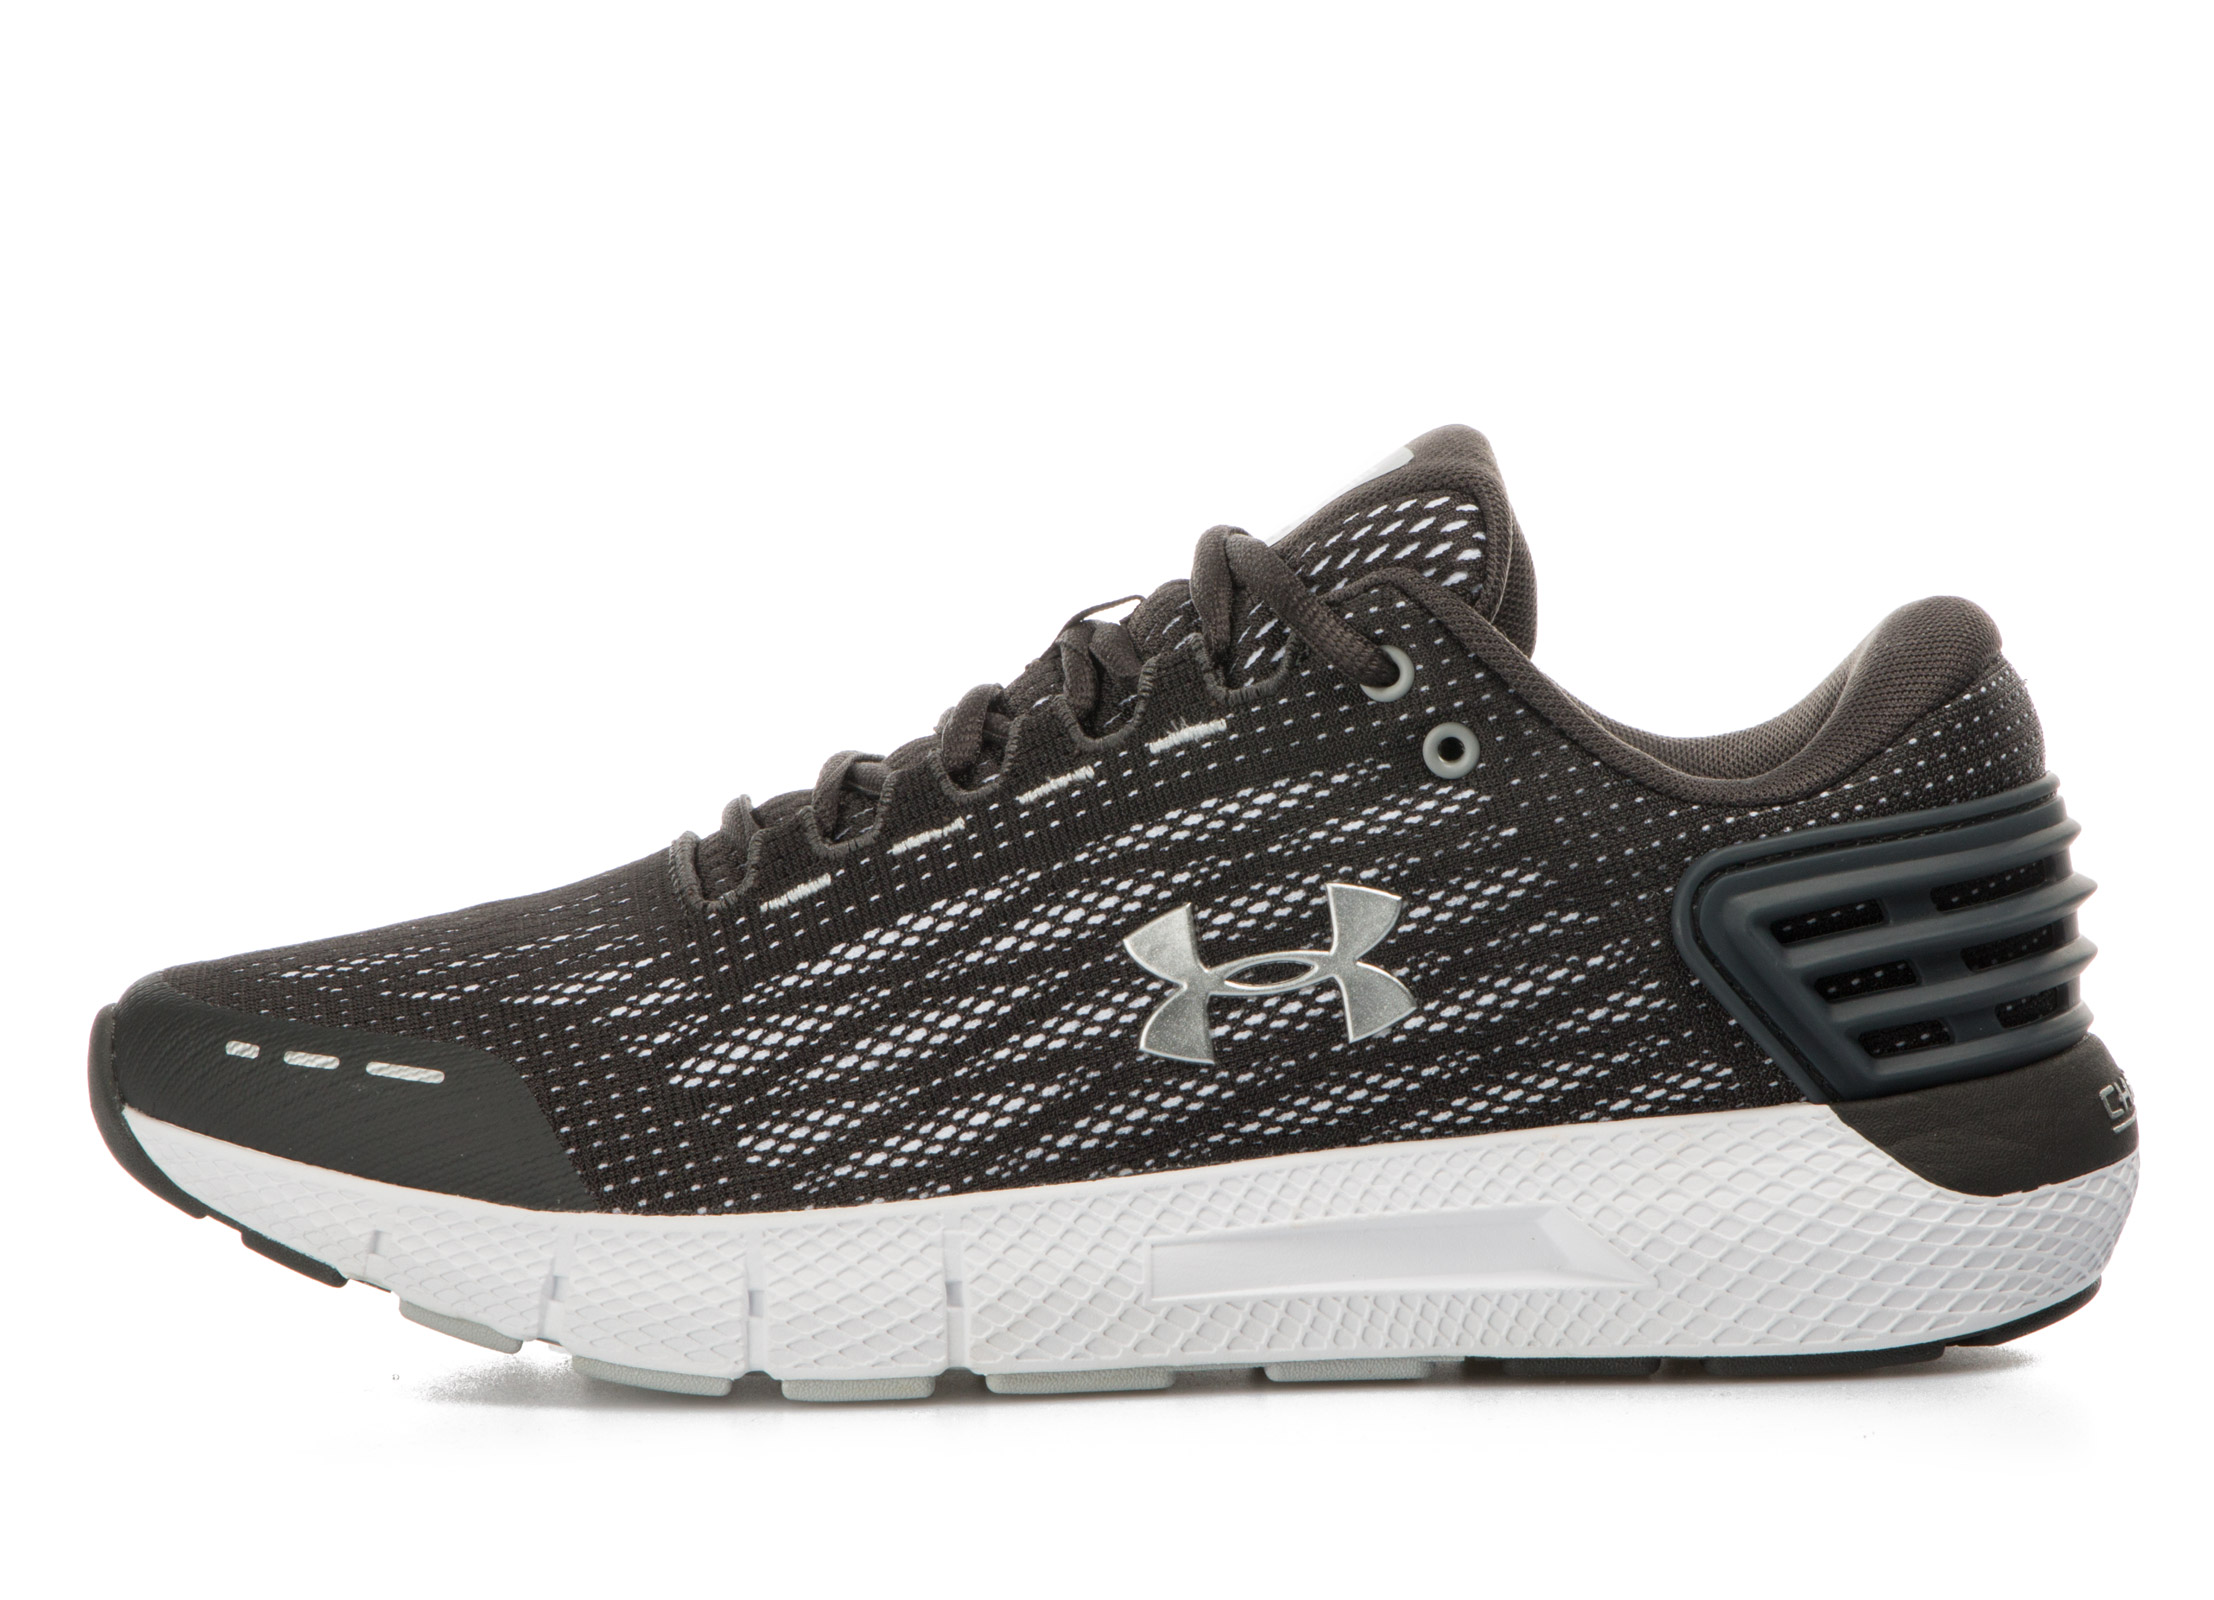 UNDER ARMOUR CHARGED ROGUE 3021225-100 Ανθρακί